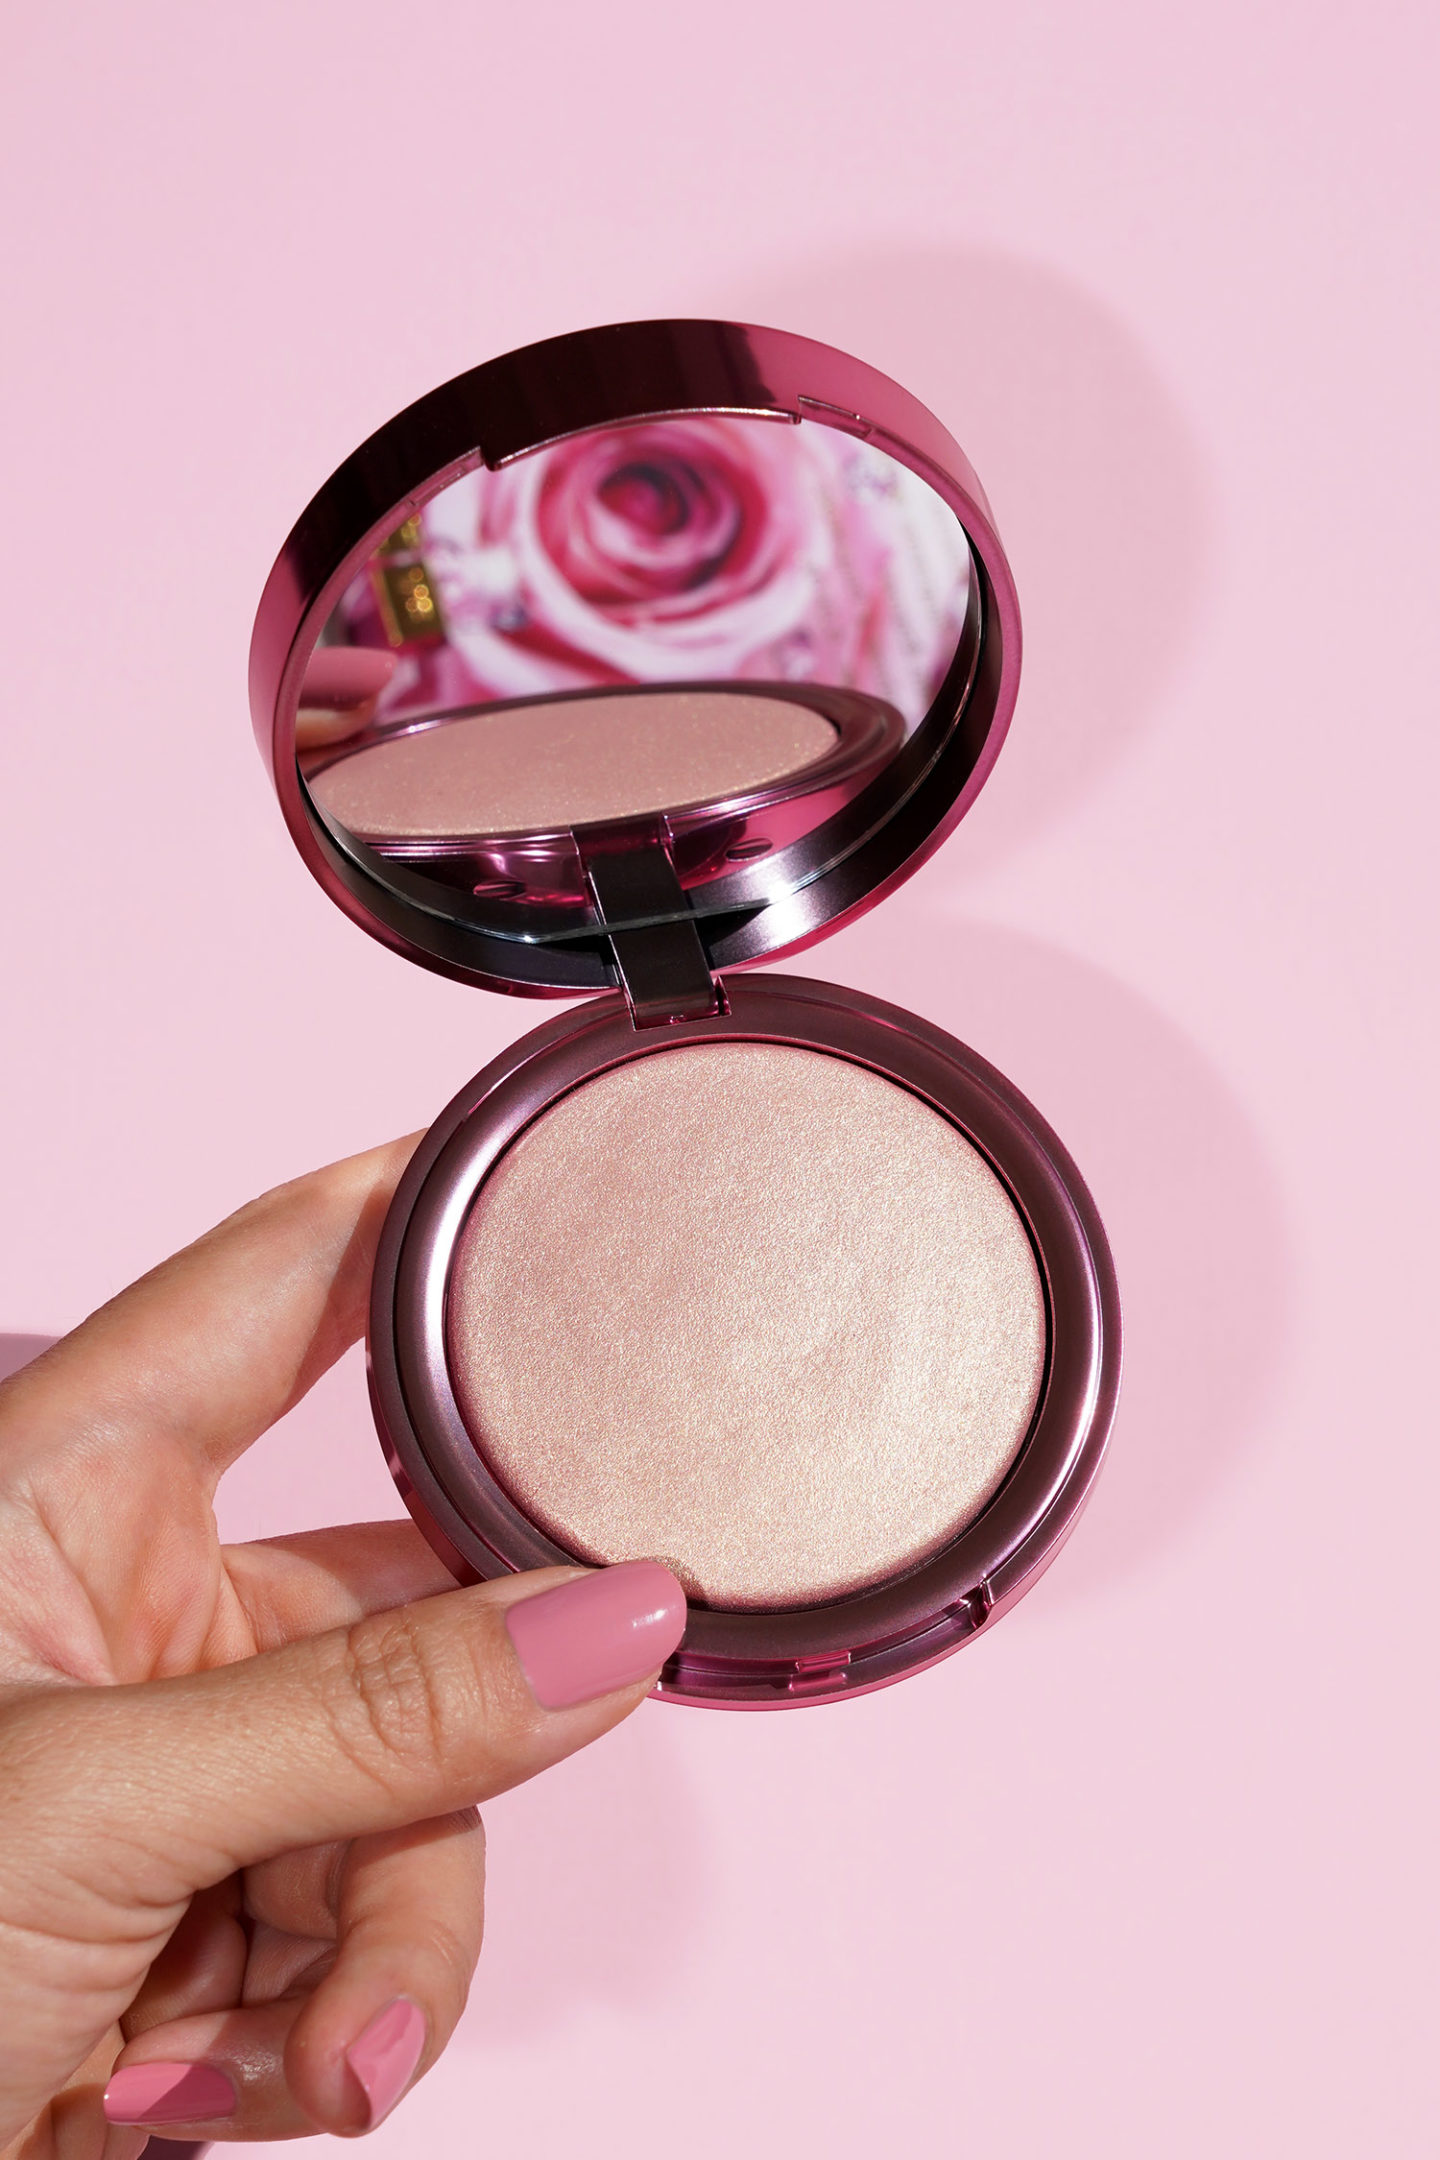 Pat McGrath Divine Rose Skin Fetish Ultra Glow Highlighter